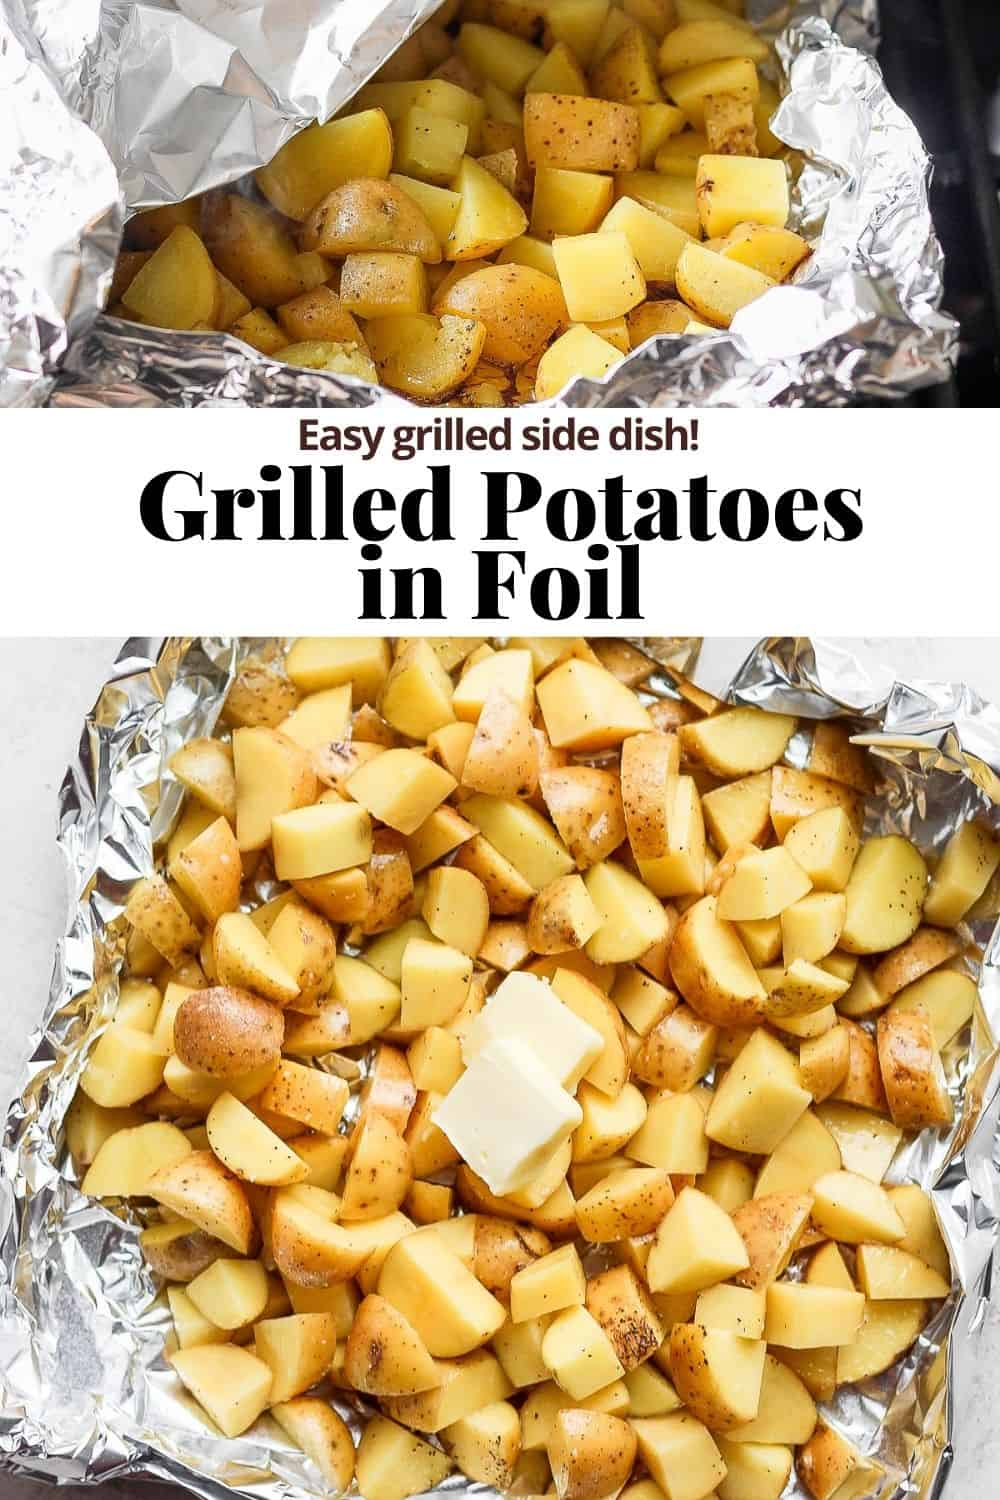 Pinterest image for grilled potatoes in foil.